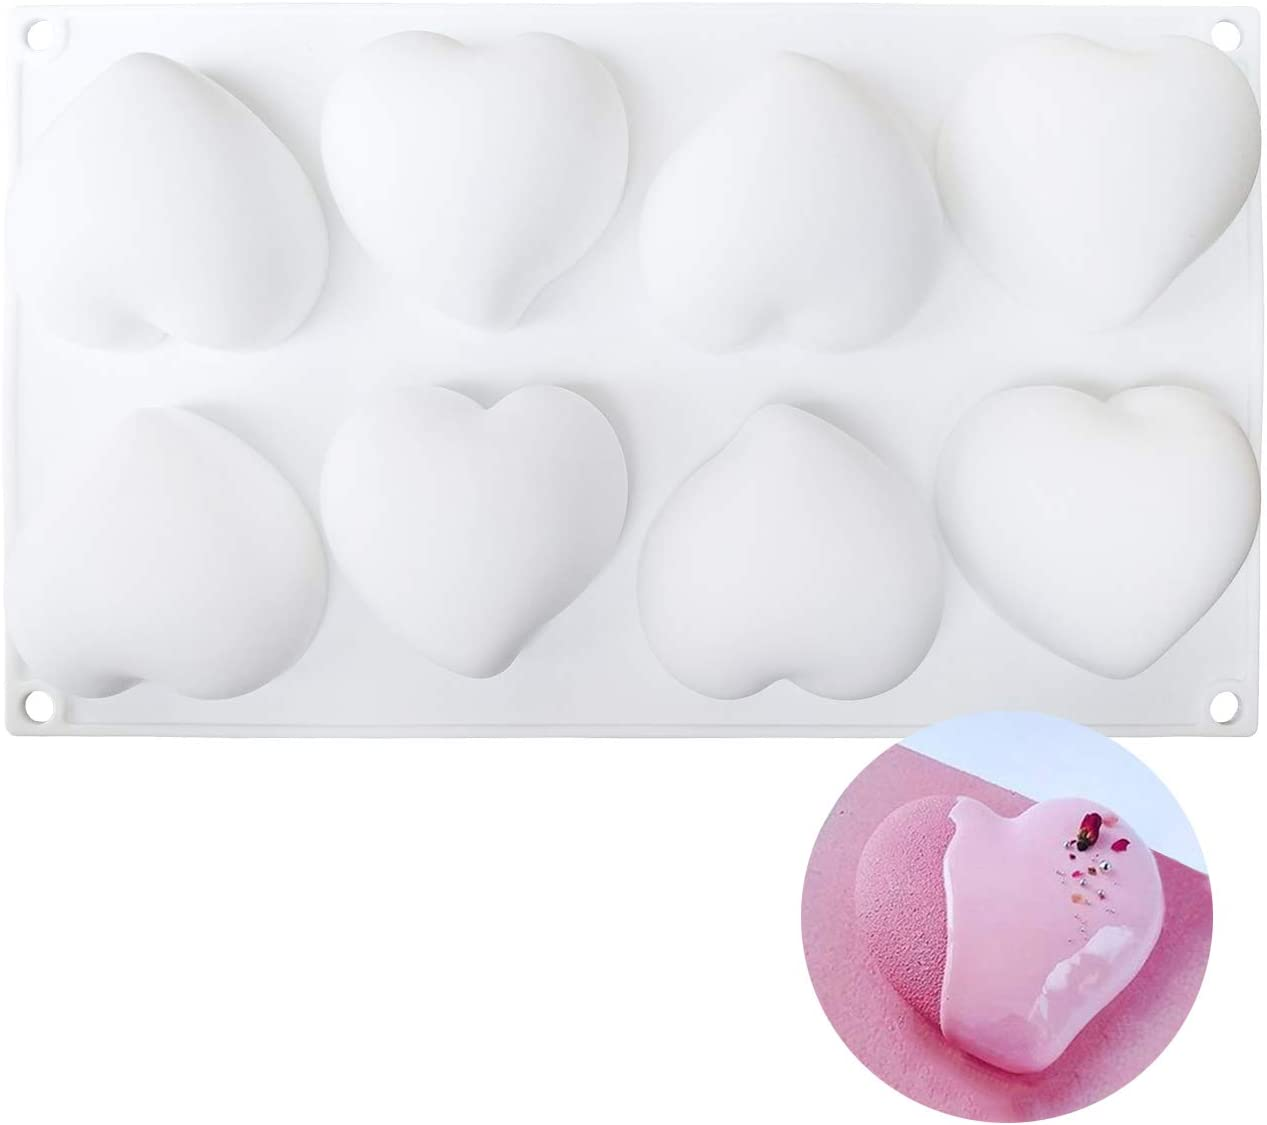 8 cavity heart silicone molds for baking and craft making